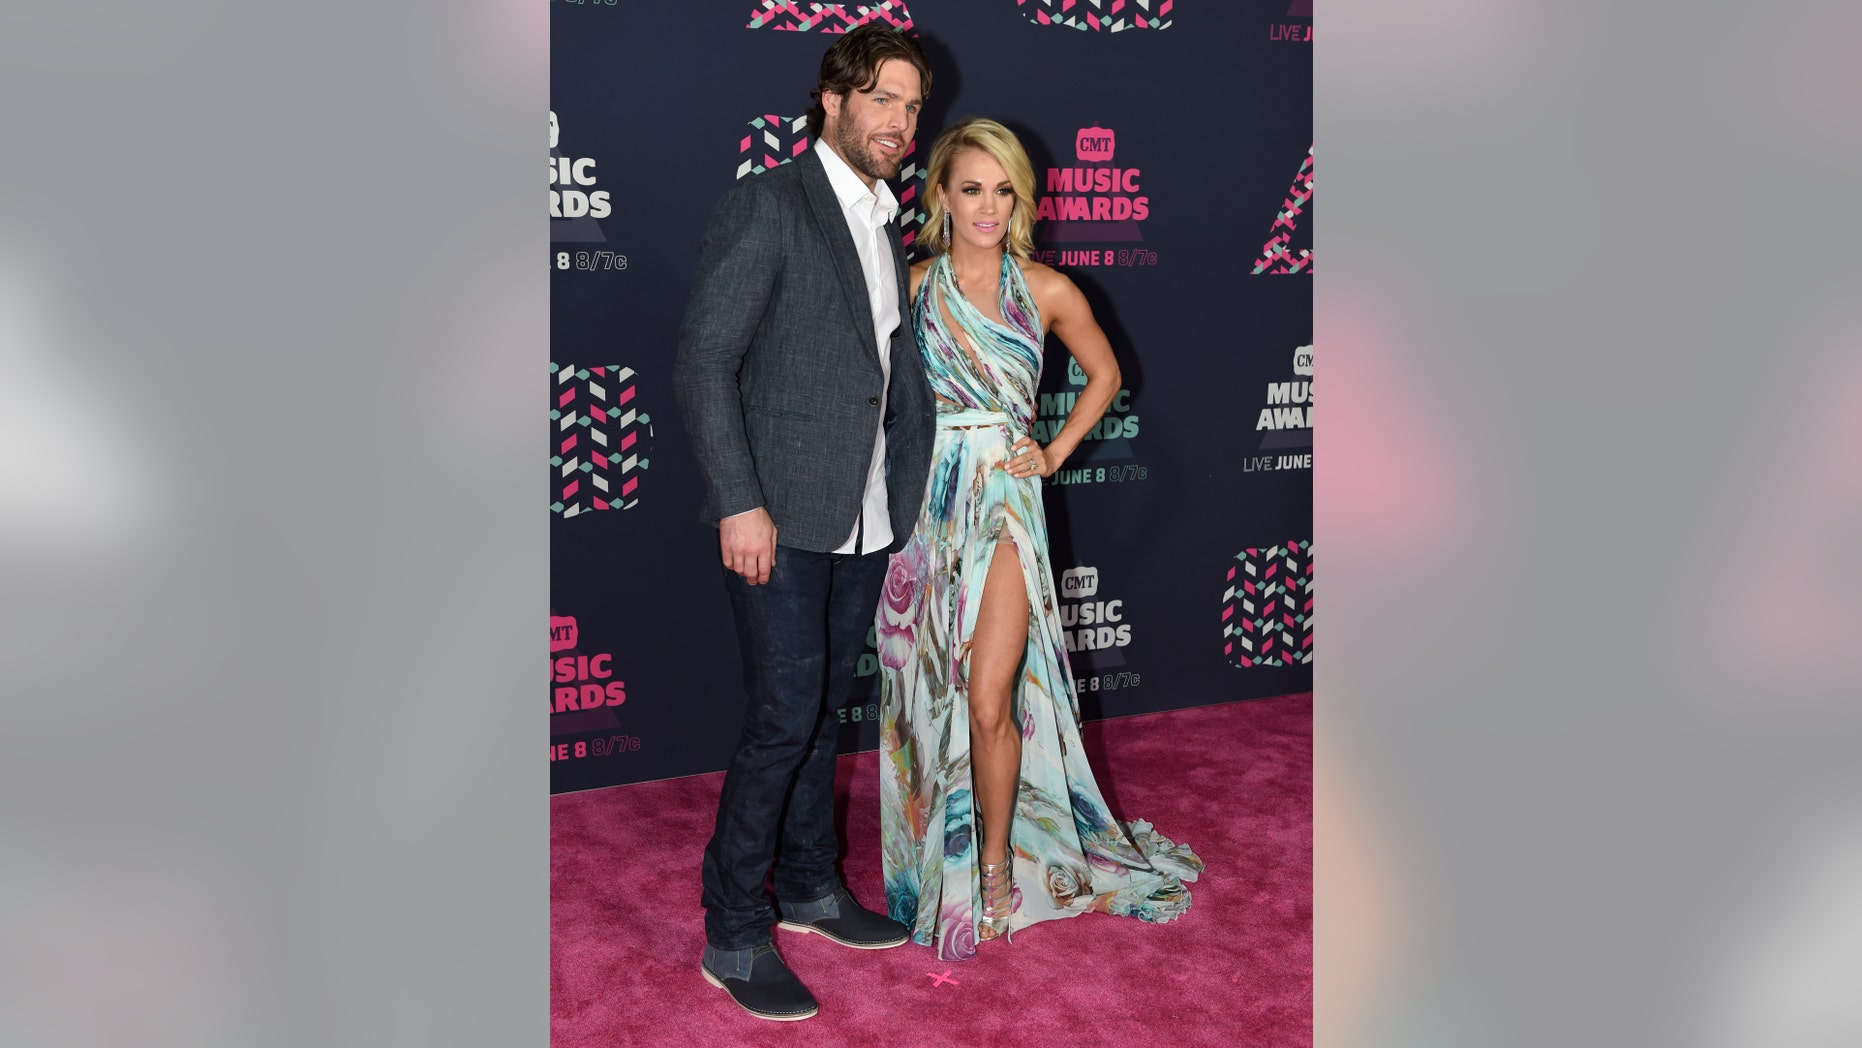 Mike Fisher, left, and Carrie Underwood arrive at the CMT Music Awards at the Bridgestone Arena on Wednesday, June 8, 2016, in Nashville, Tenn. (Photo by Sanford Myers/Invision/AP)